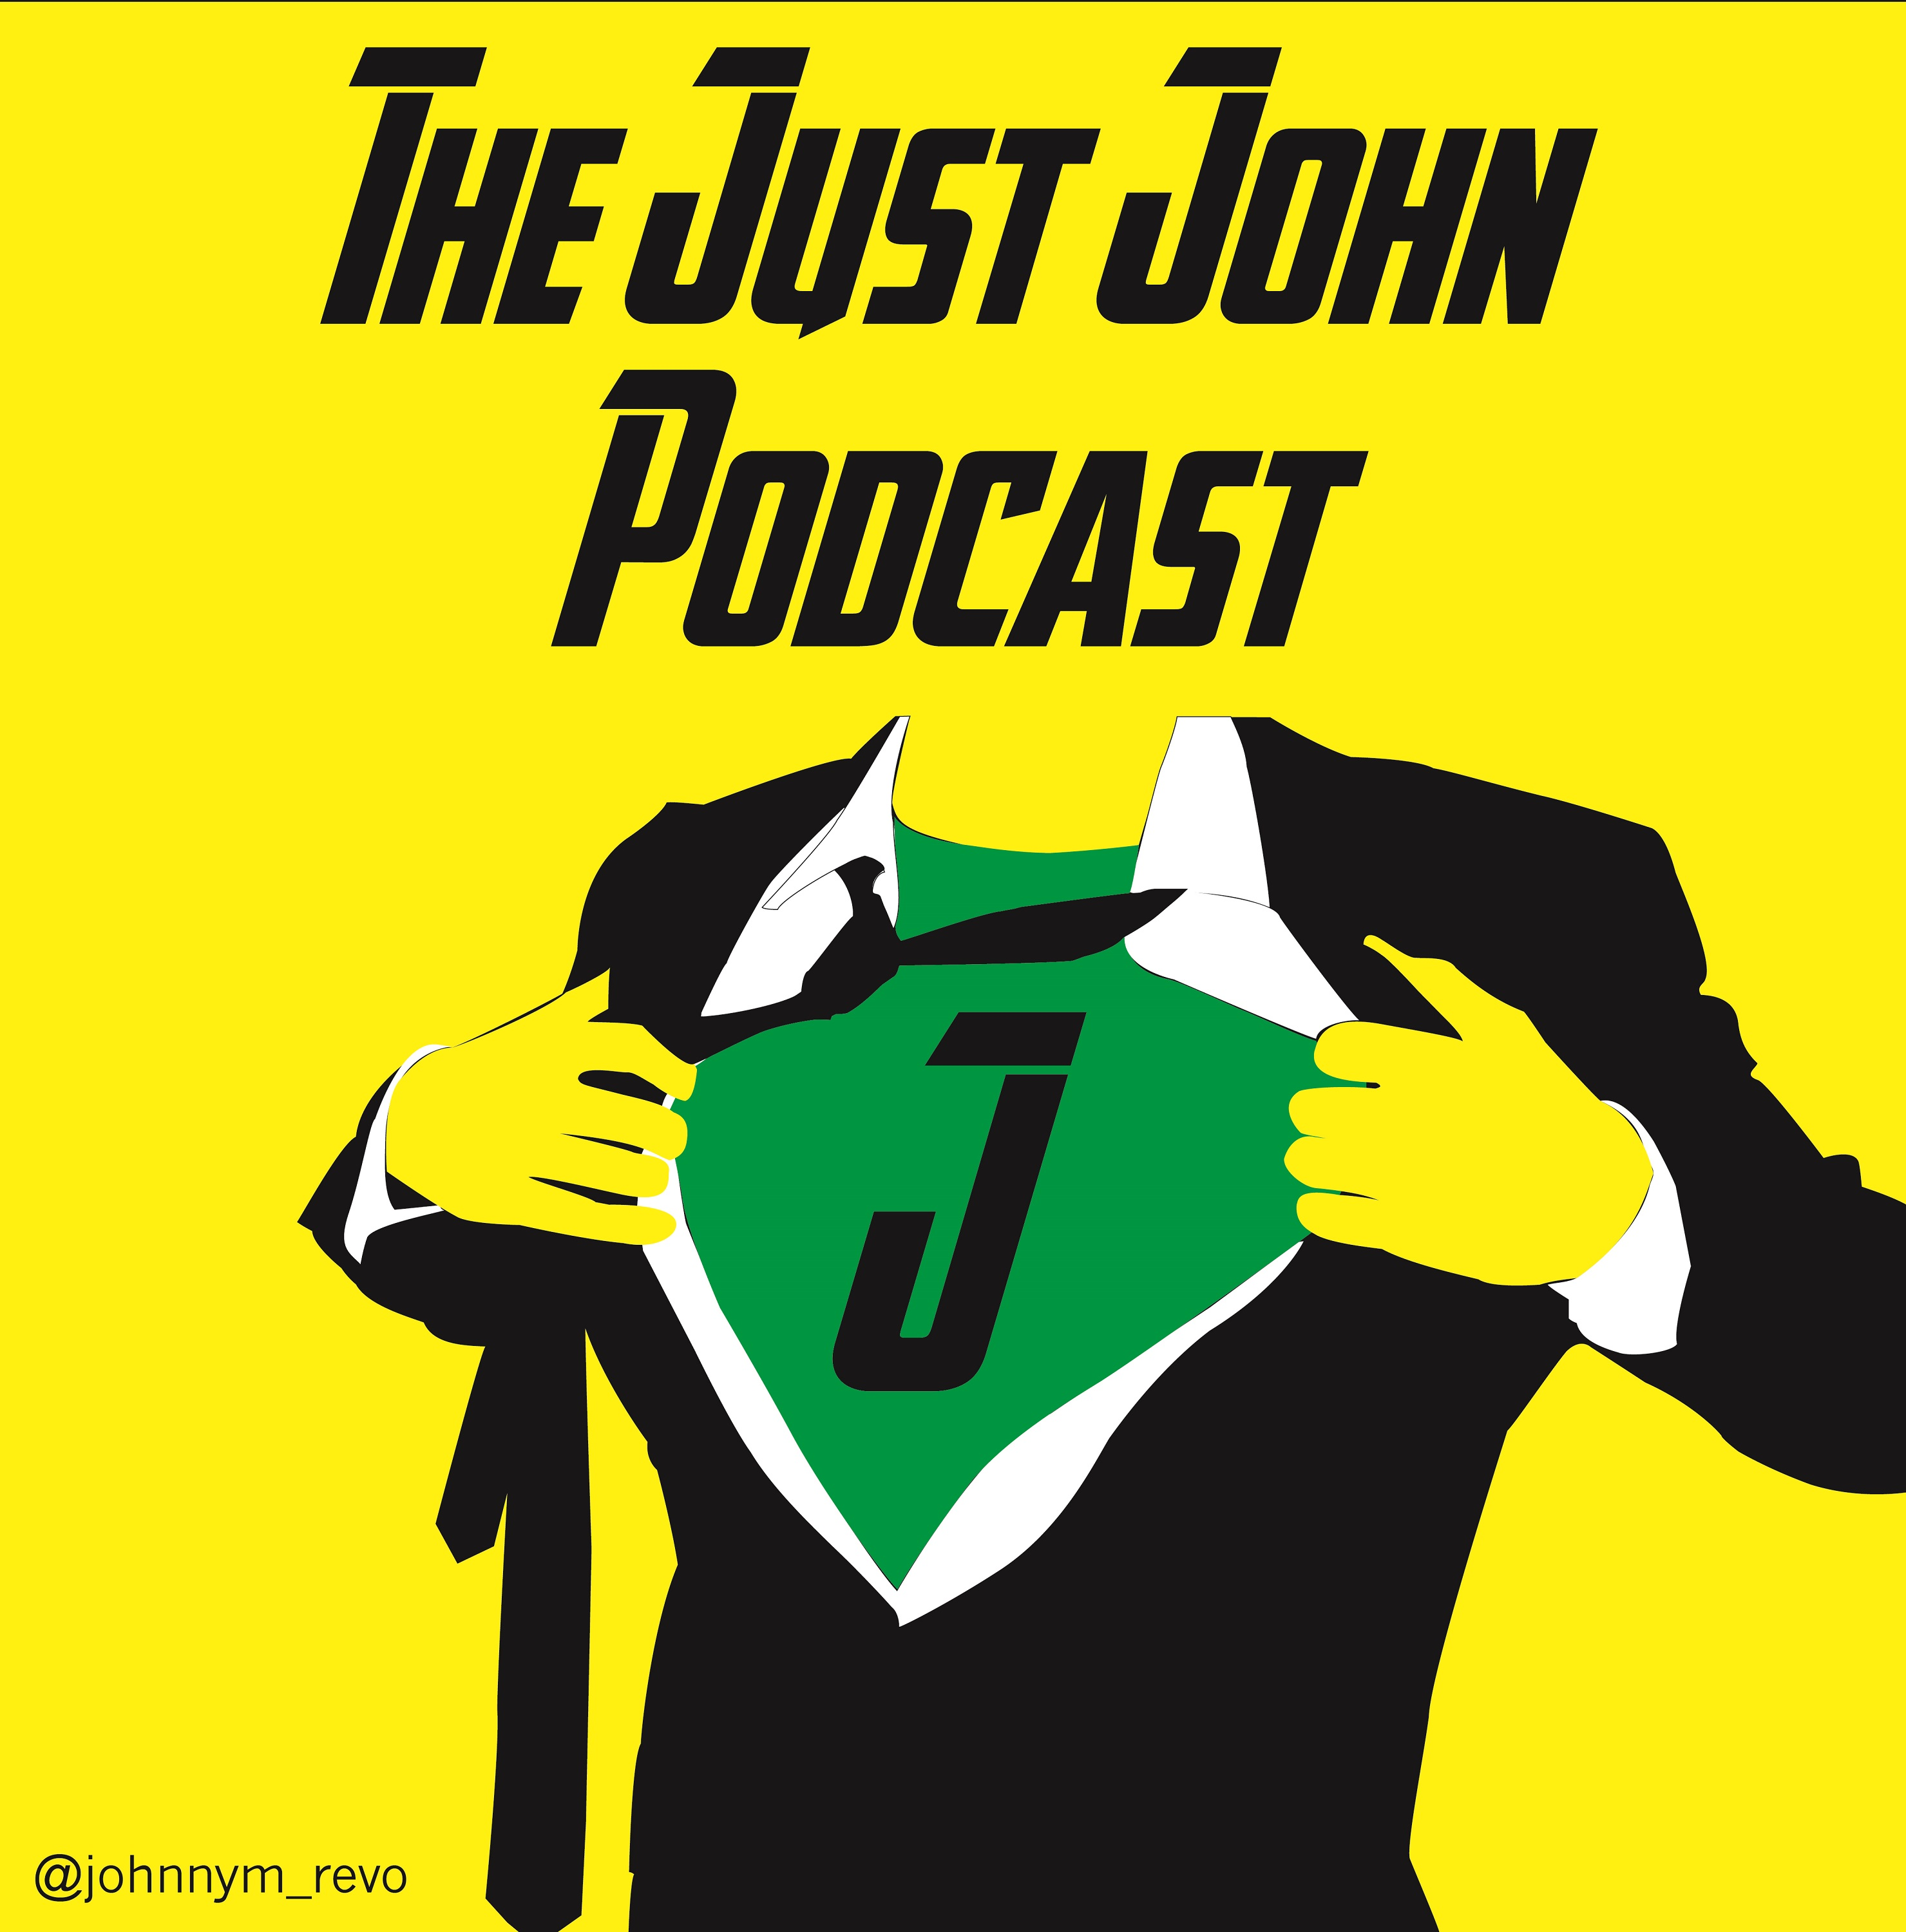 The Just John Podcast